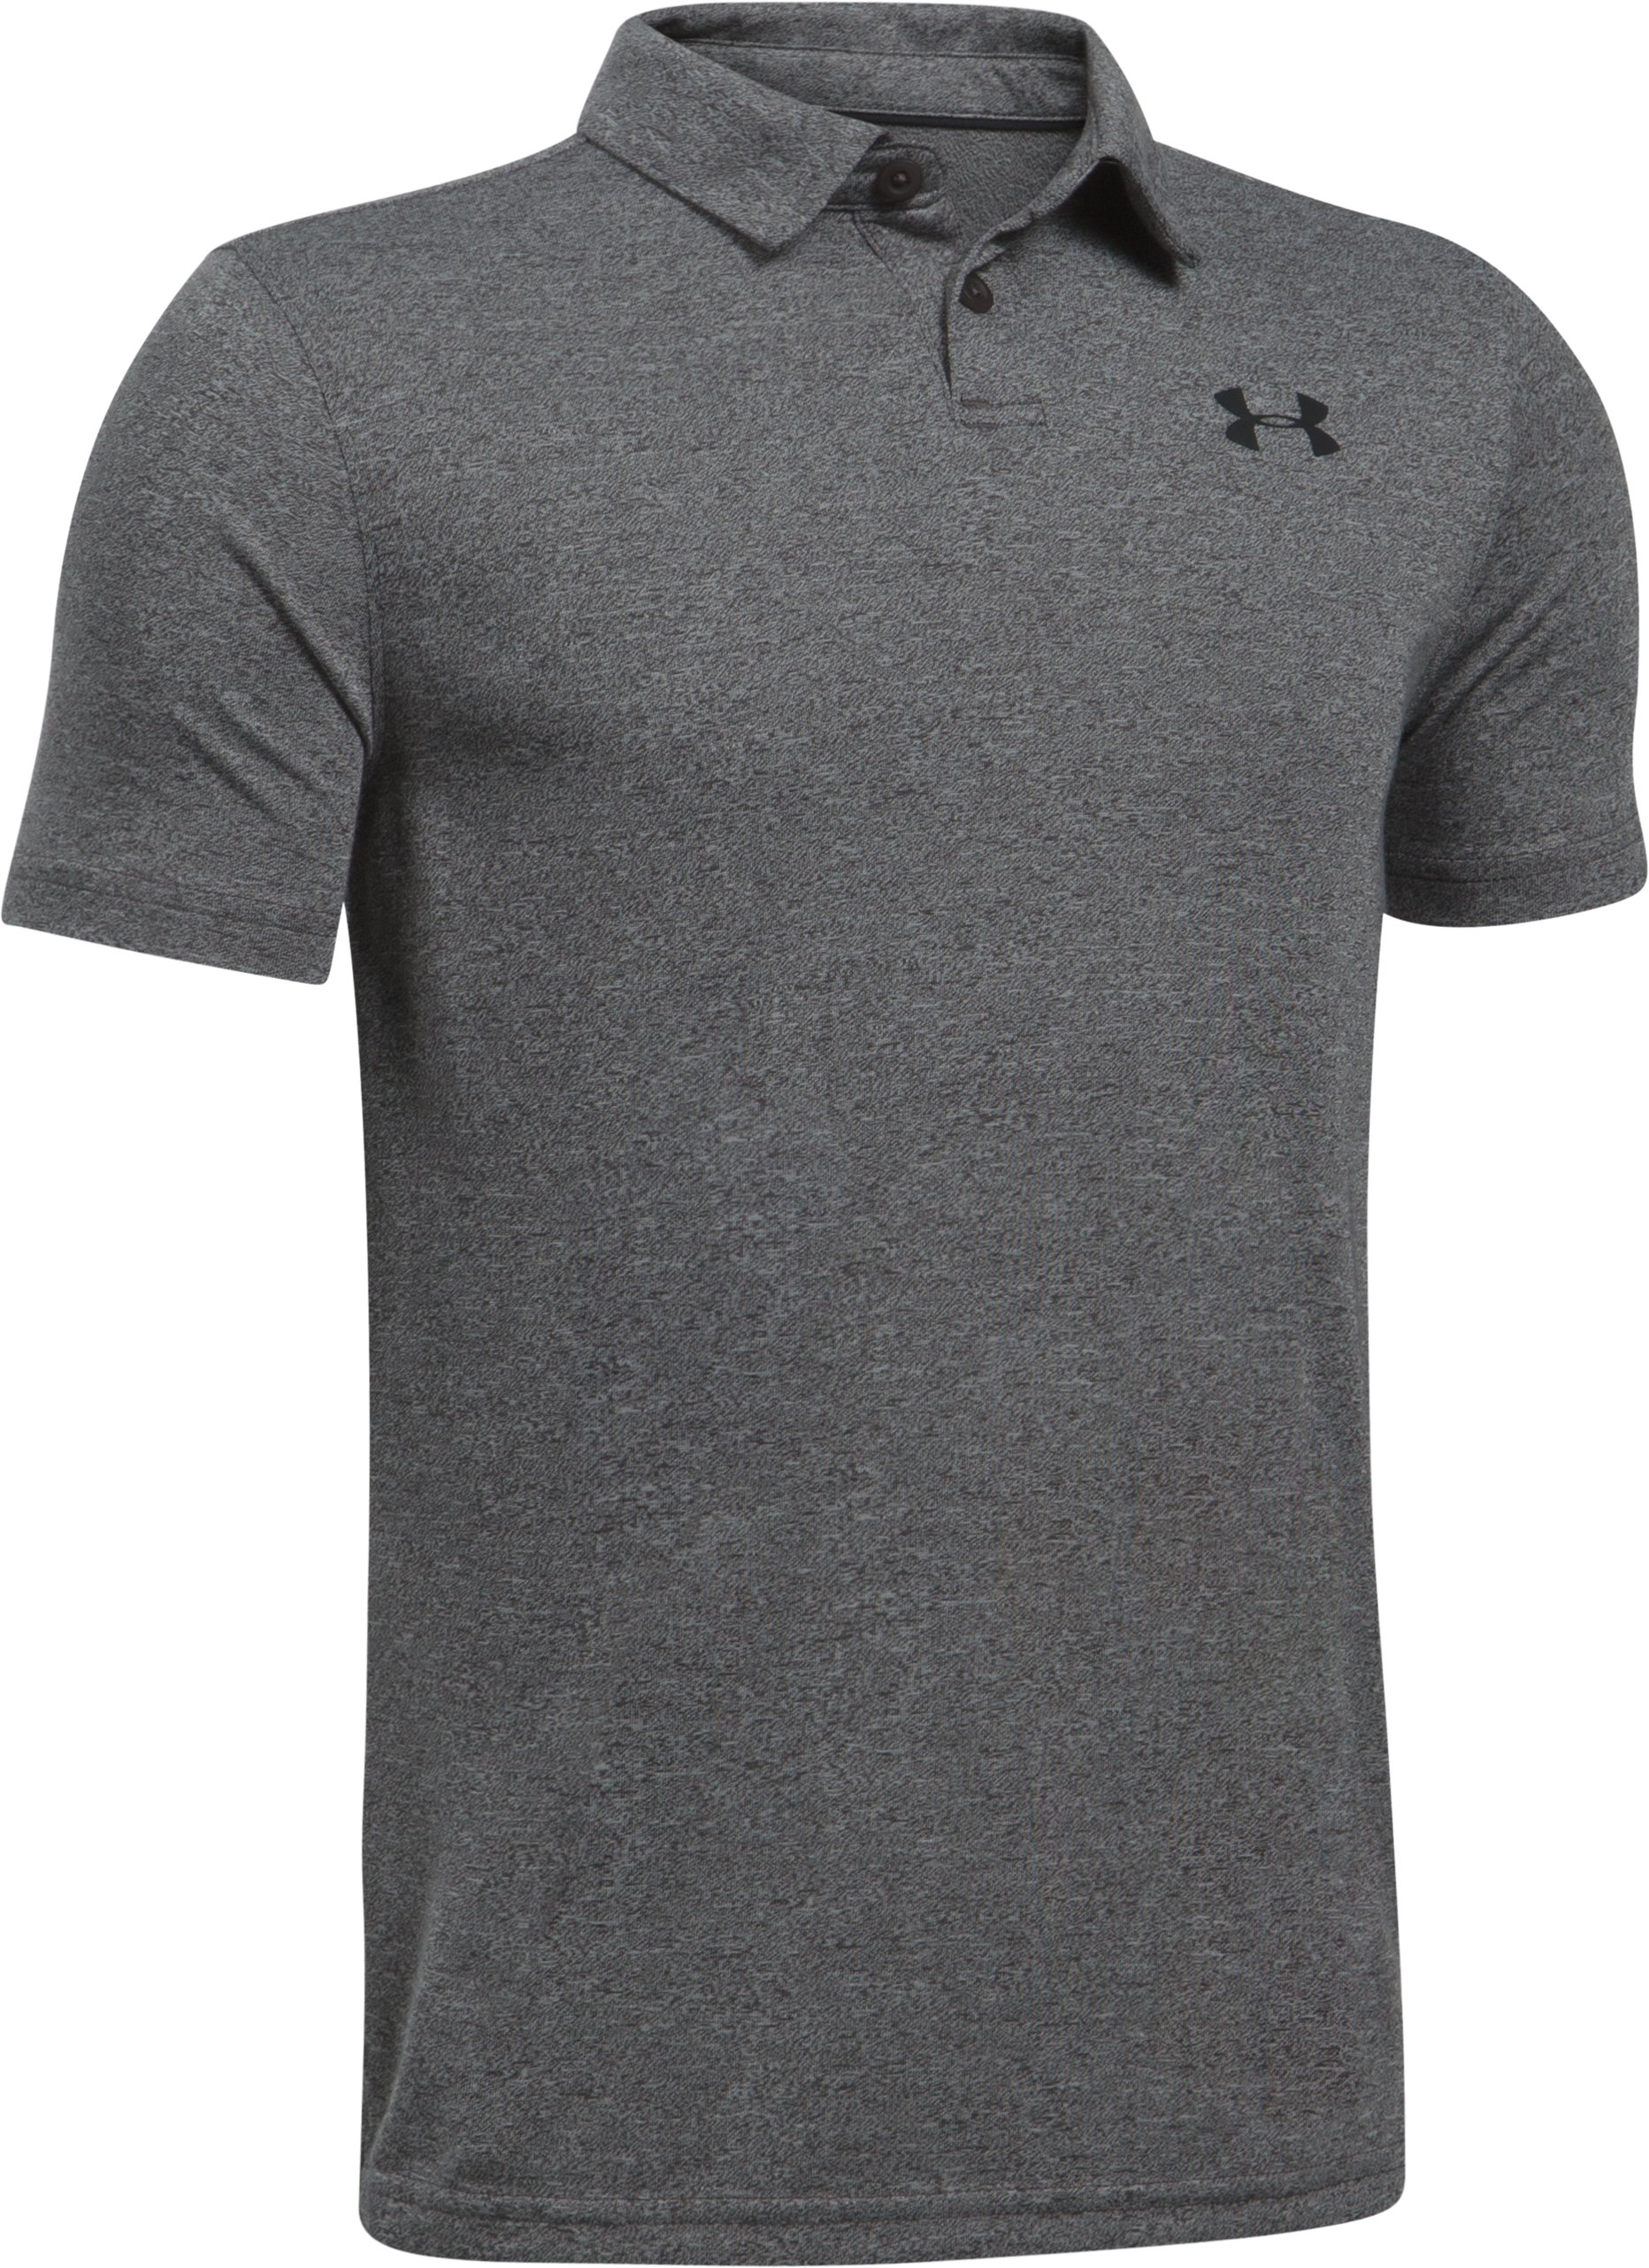 Boys' UA Threadborne Polo, Carbon Heather, undefined